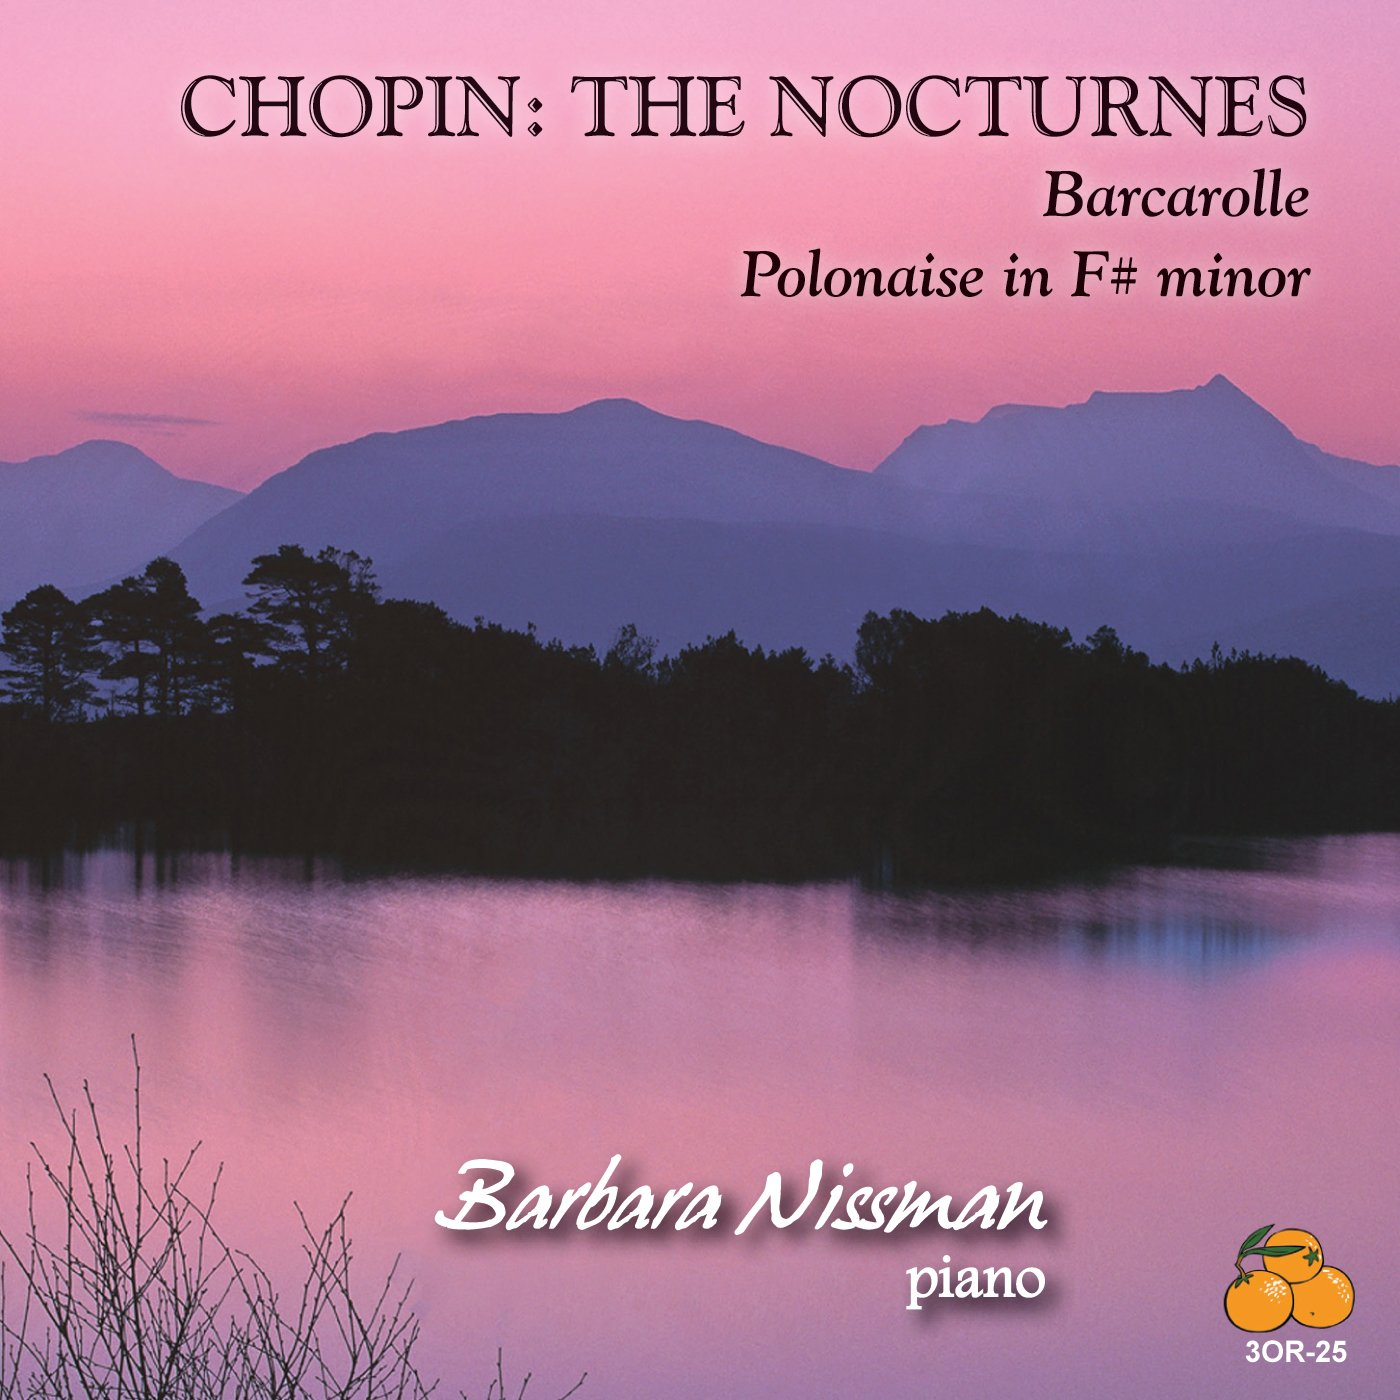 Chopin: The Nocturnes by Three Oranges Recordings